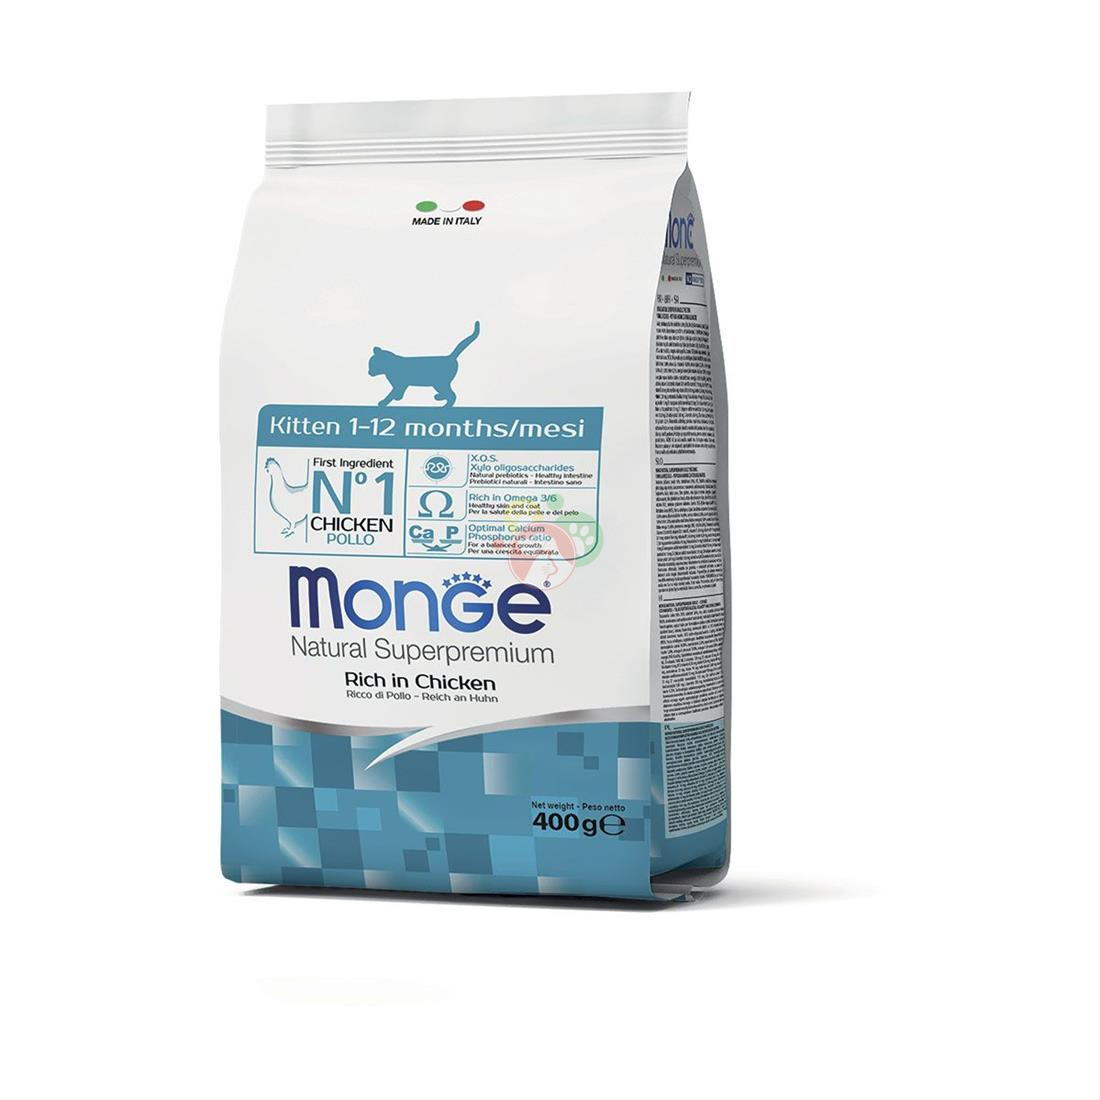 Monge Natural Superpremium Kitten Crocchette di Pollo Da 400g Gattini